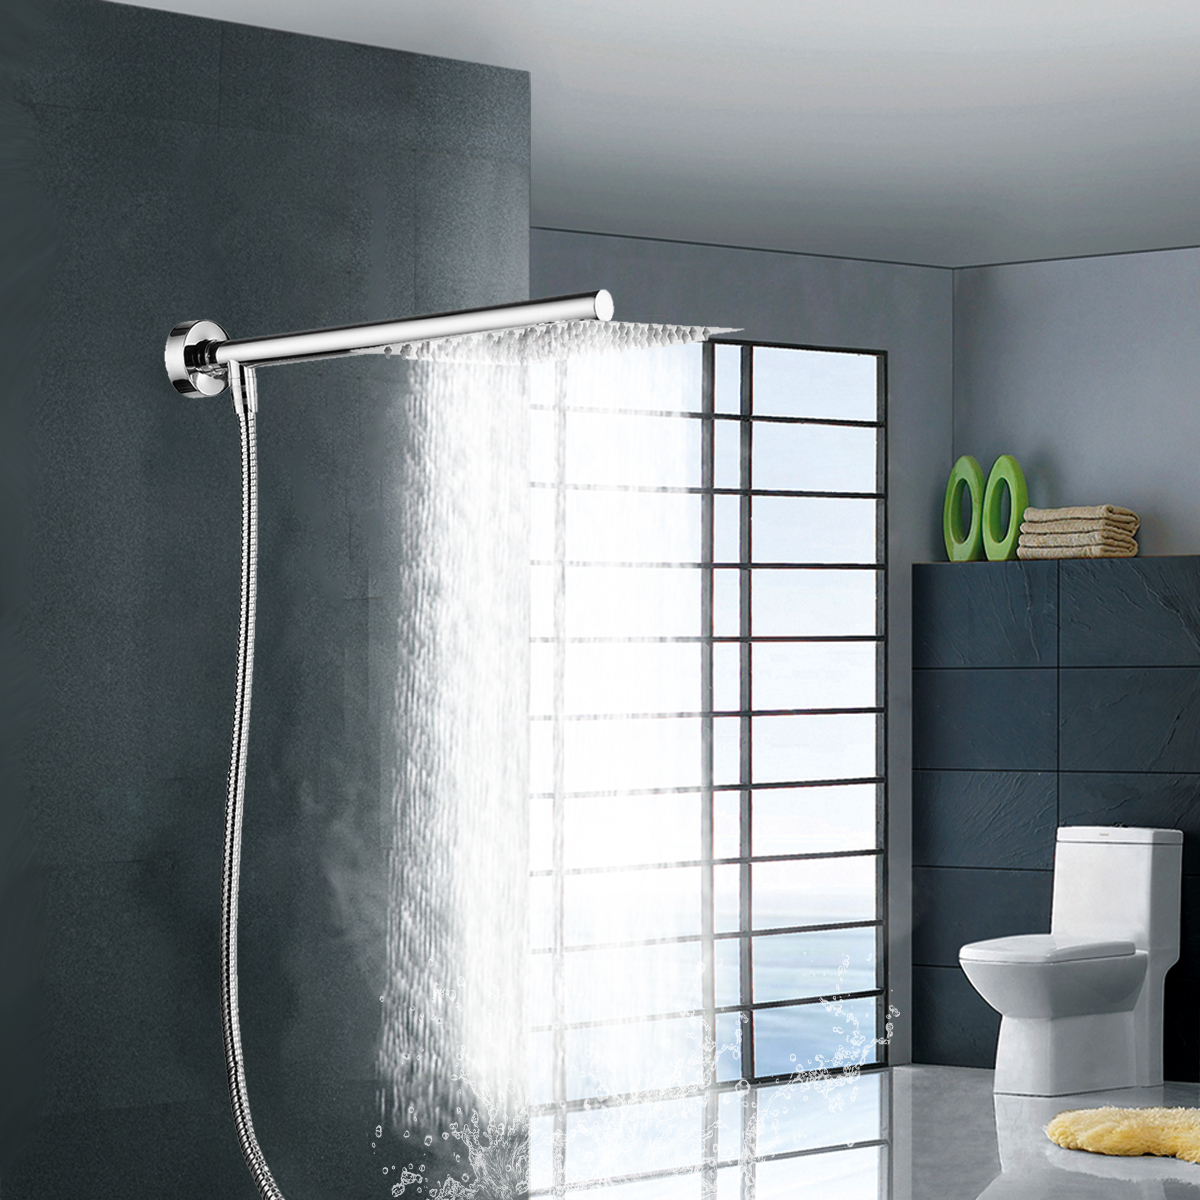 8 inch Rainfall Shower Head with Shower Arm Bottom Entry Kits with Shower Hose